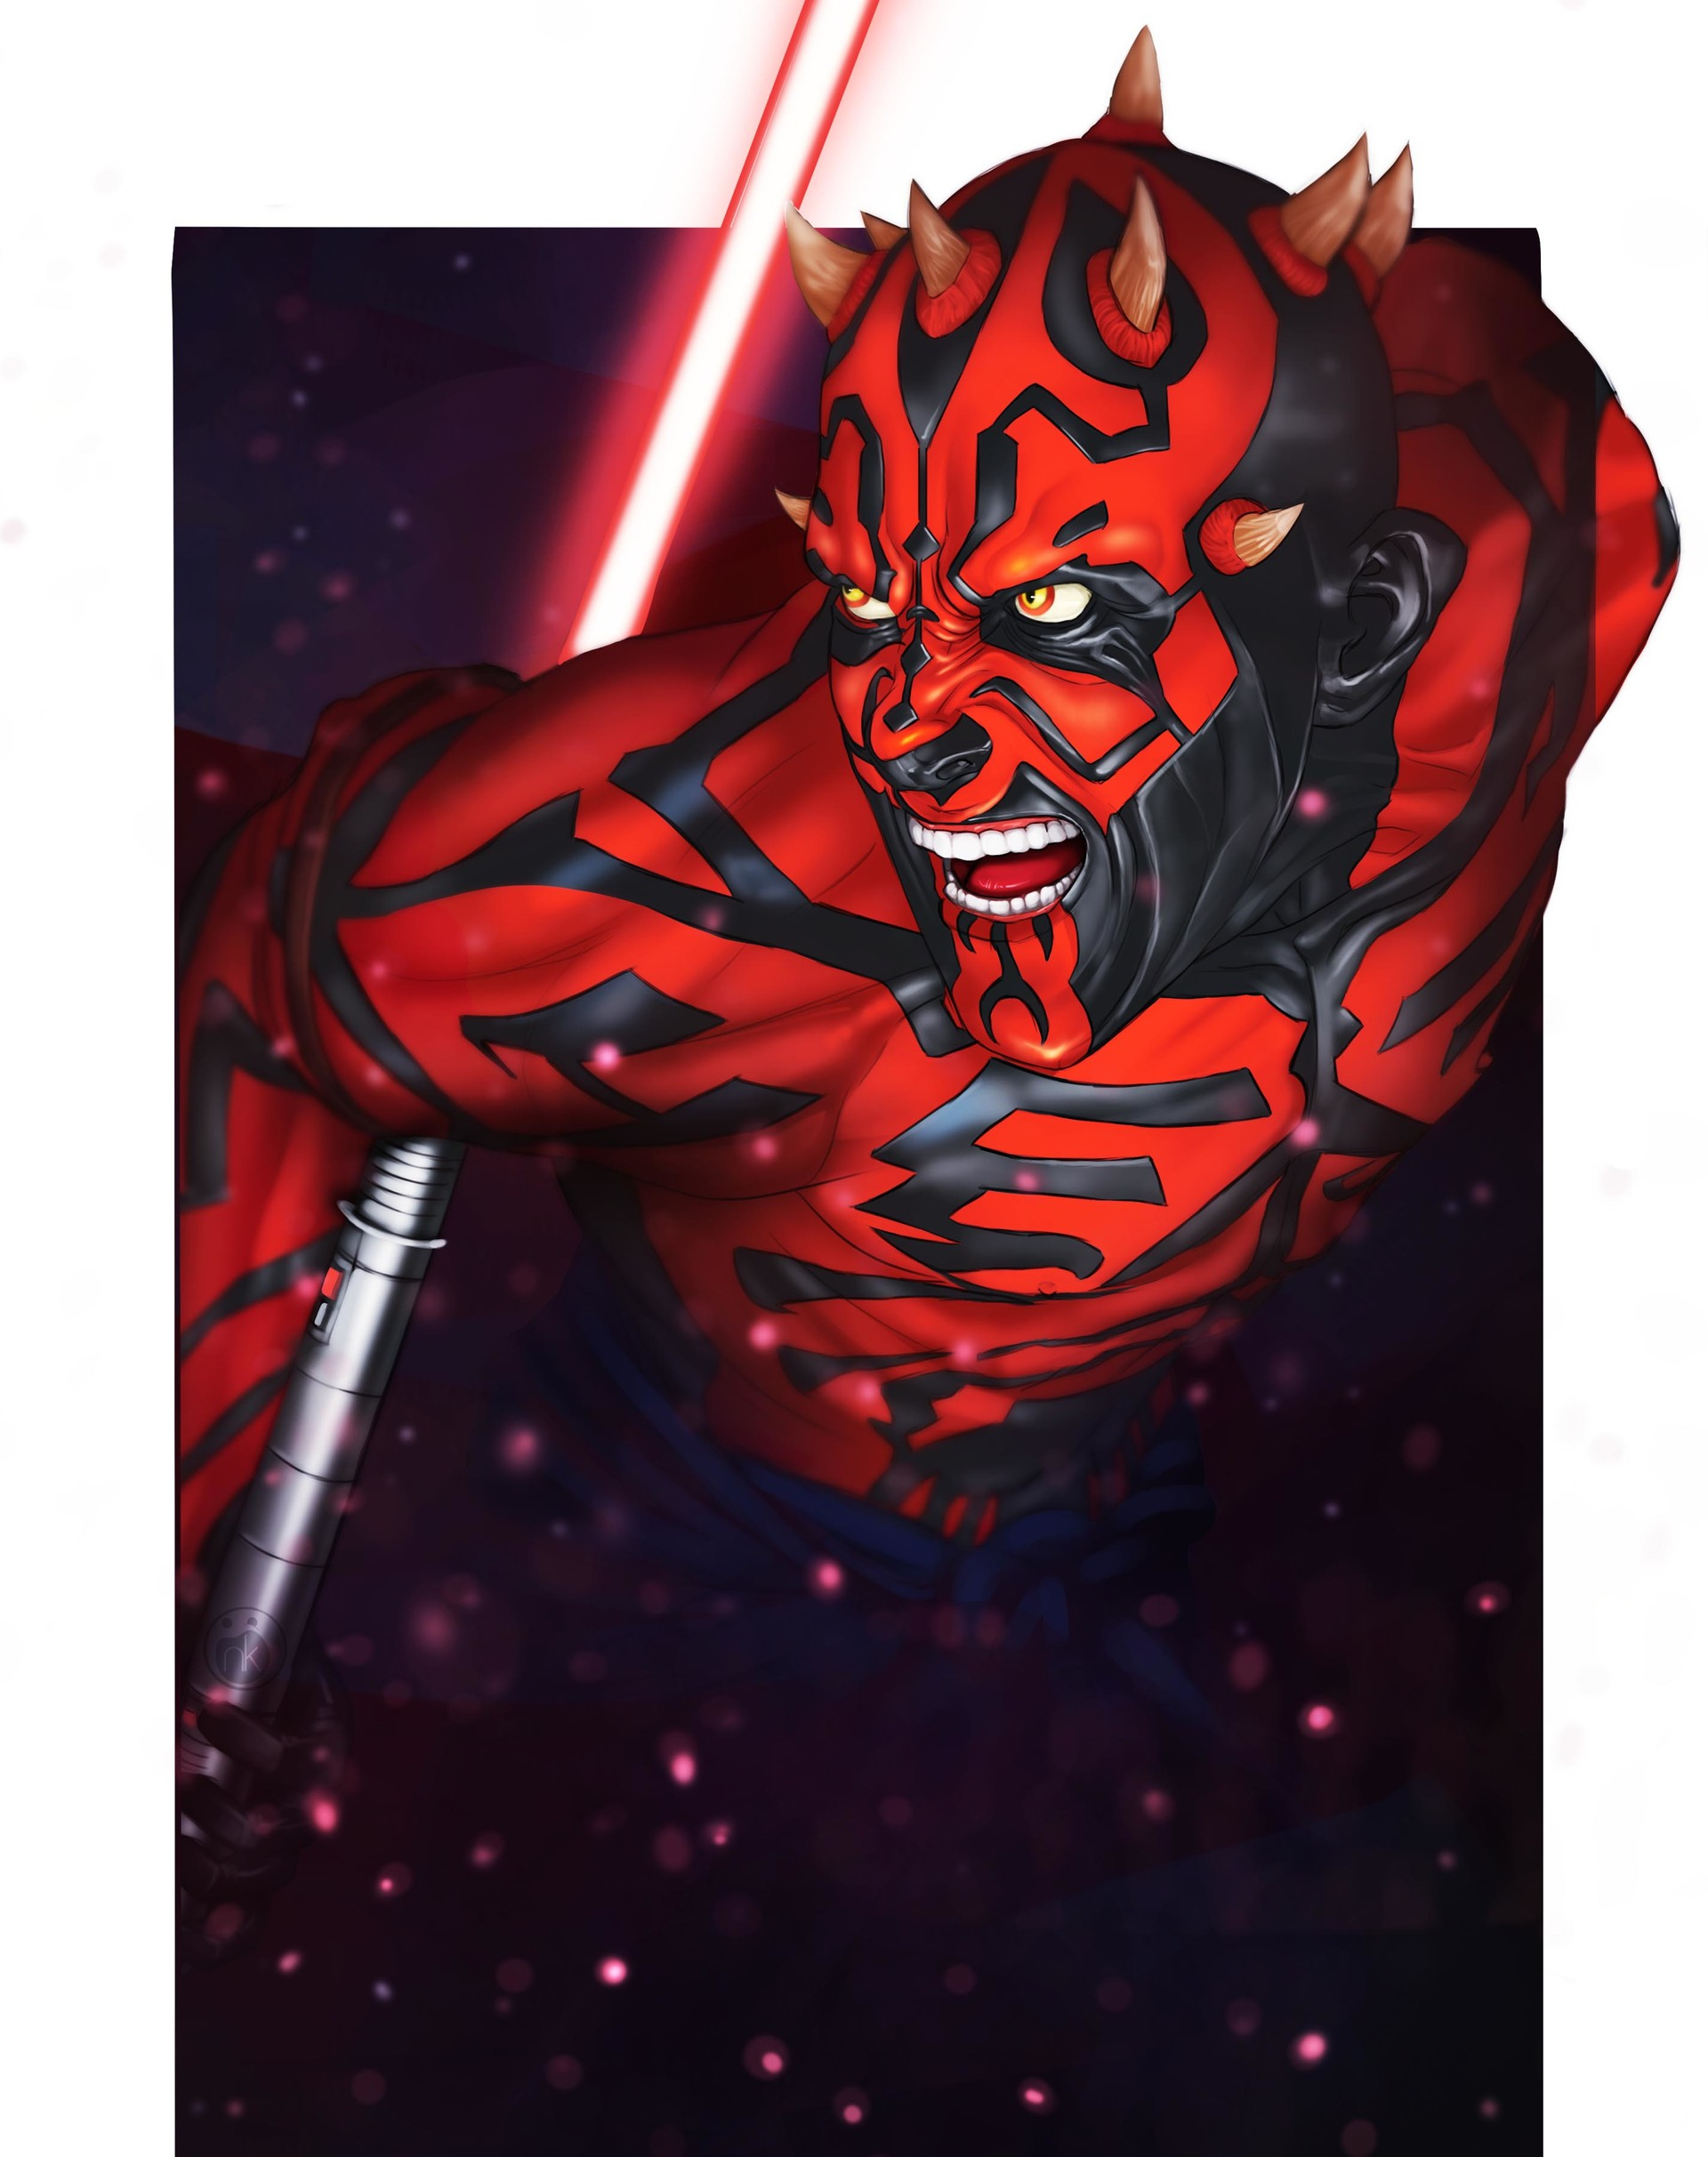 Kai ussin darth maul 9 5x12